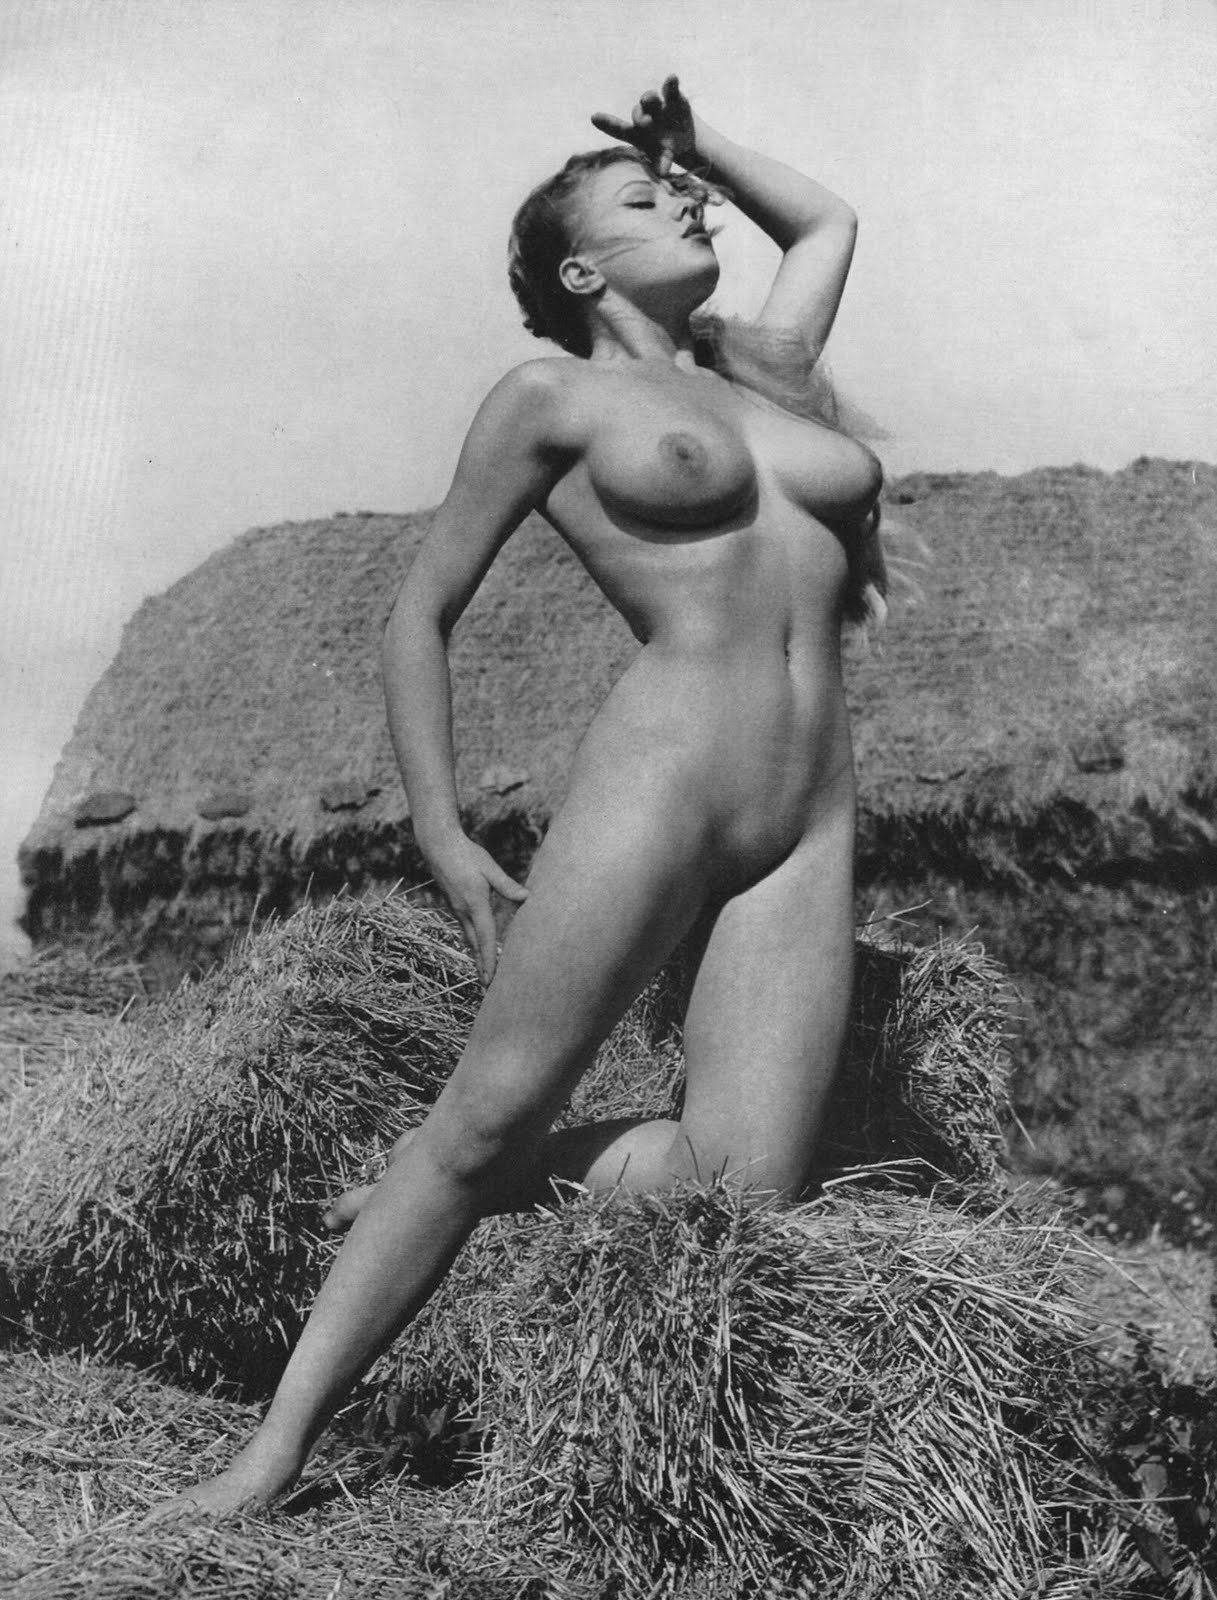 irish mccalla nude photos